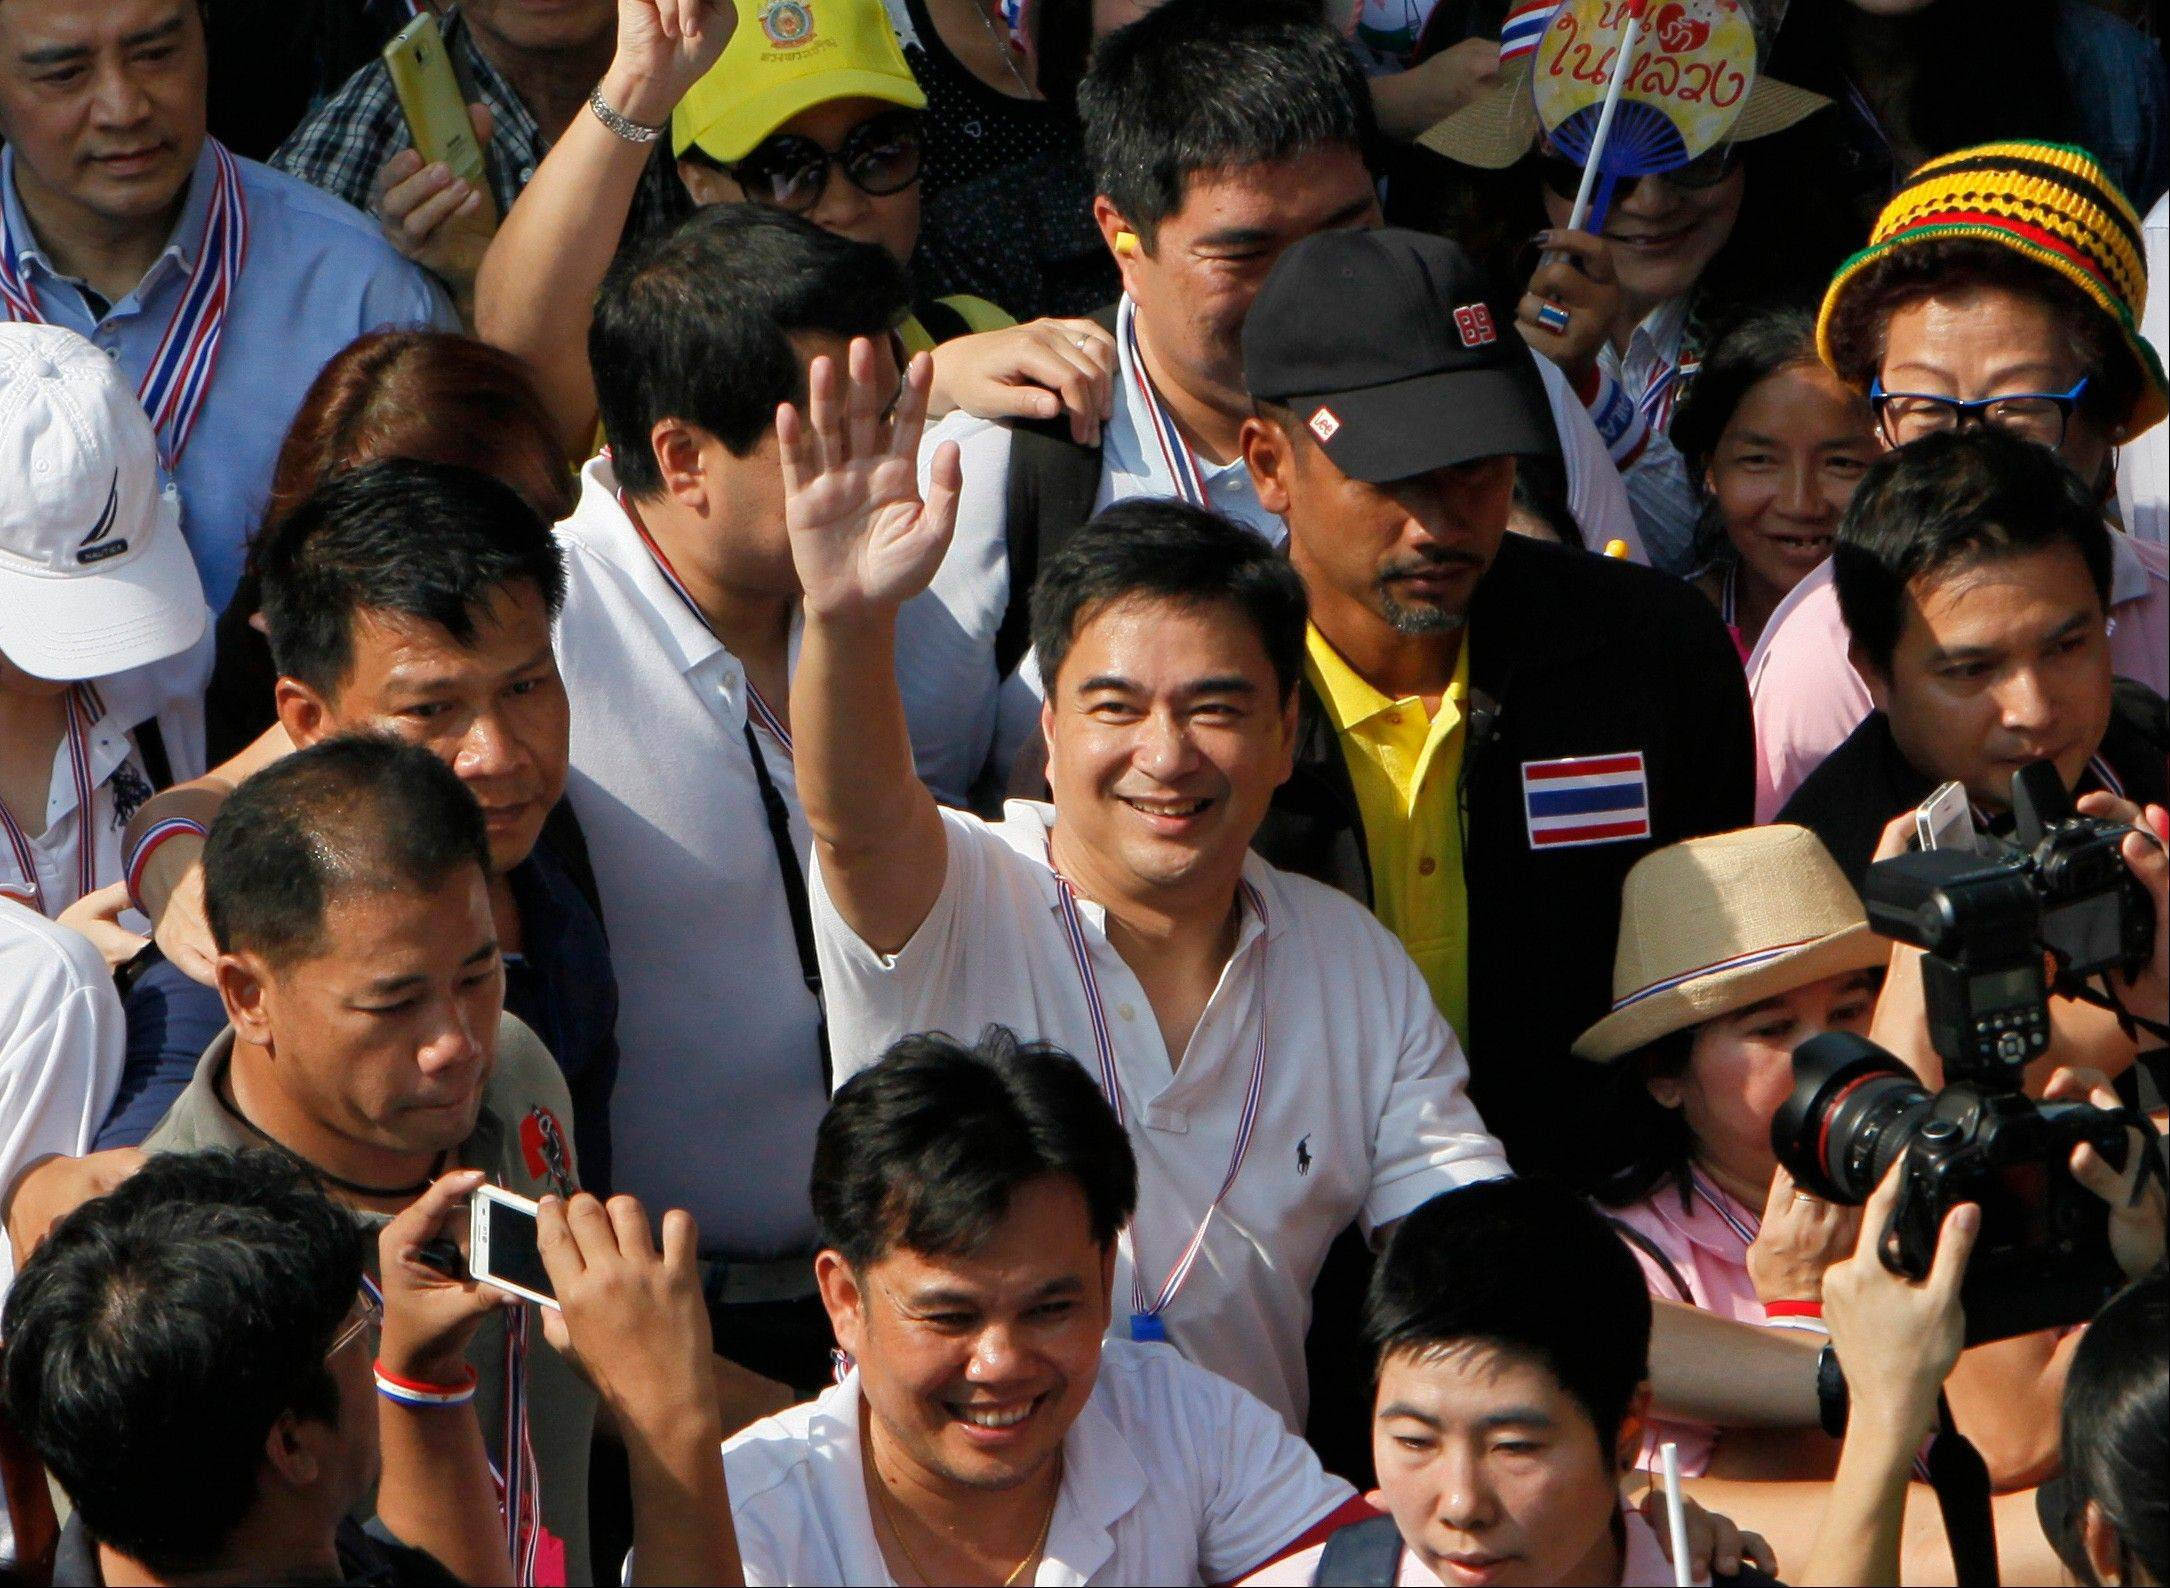 Associated Press Democrat leader and former Prime Minister Abhisit Vejjajiva, center, in this photo from Dec. 9, 2013, waves as he marches with anti-government protesters in Bangkok. The party�s leader Abhisit Vejjajiva announced the boycott after a meeting Saturday, Dec. 21, of party executives. He said the decision was made to try to ensure political reforms are implemented.